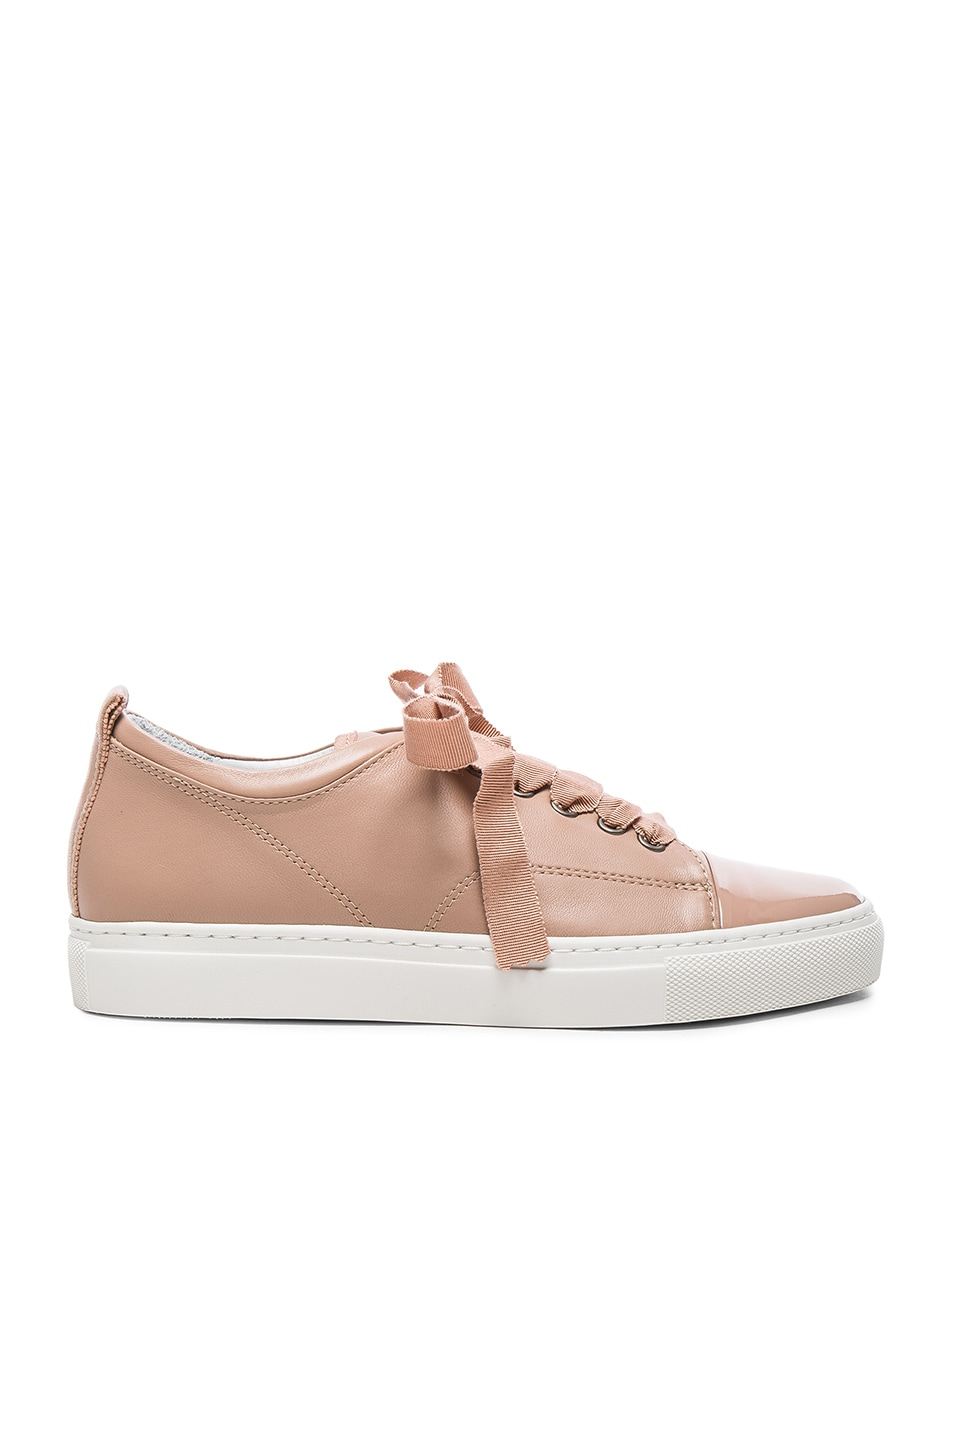 Image 1 of Lanvin Low Top Sneakers in Powder & Nude